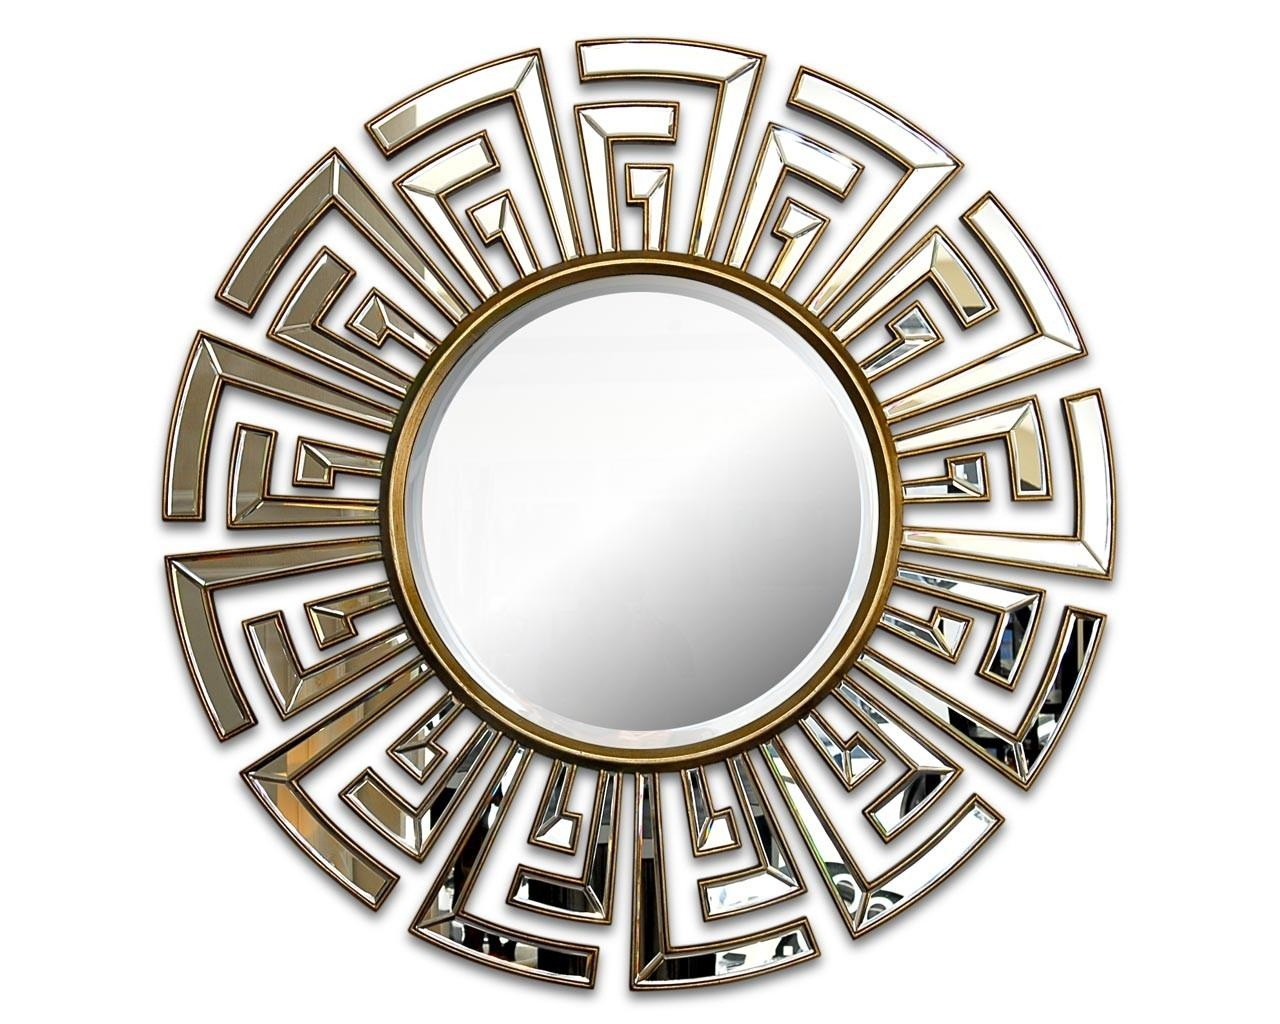 Contemporary Art Deco Round Mirror | Statement Circular Mirrors Regarding Art Deco Mirrors (Image 11 of 20)